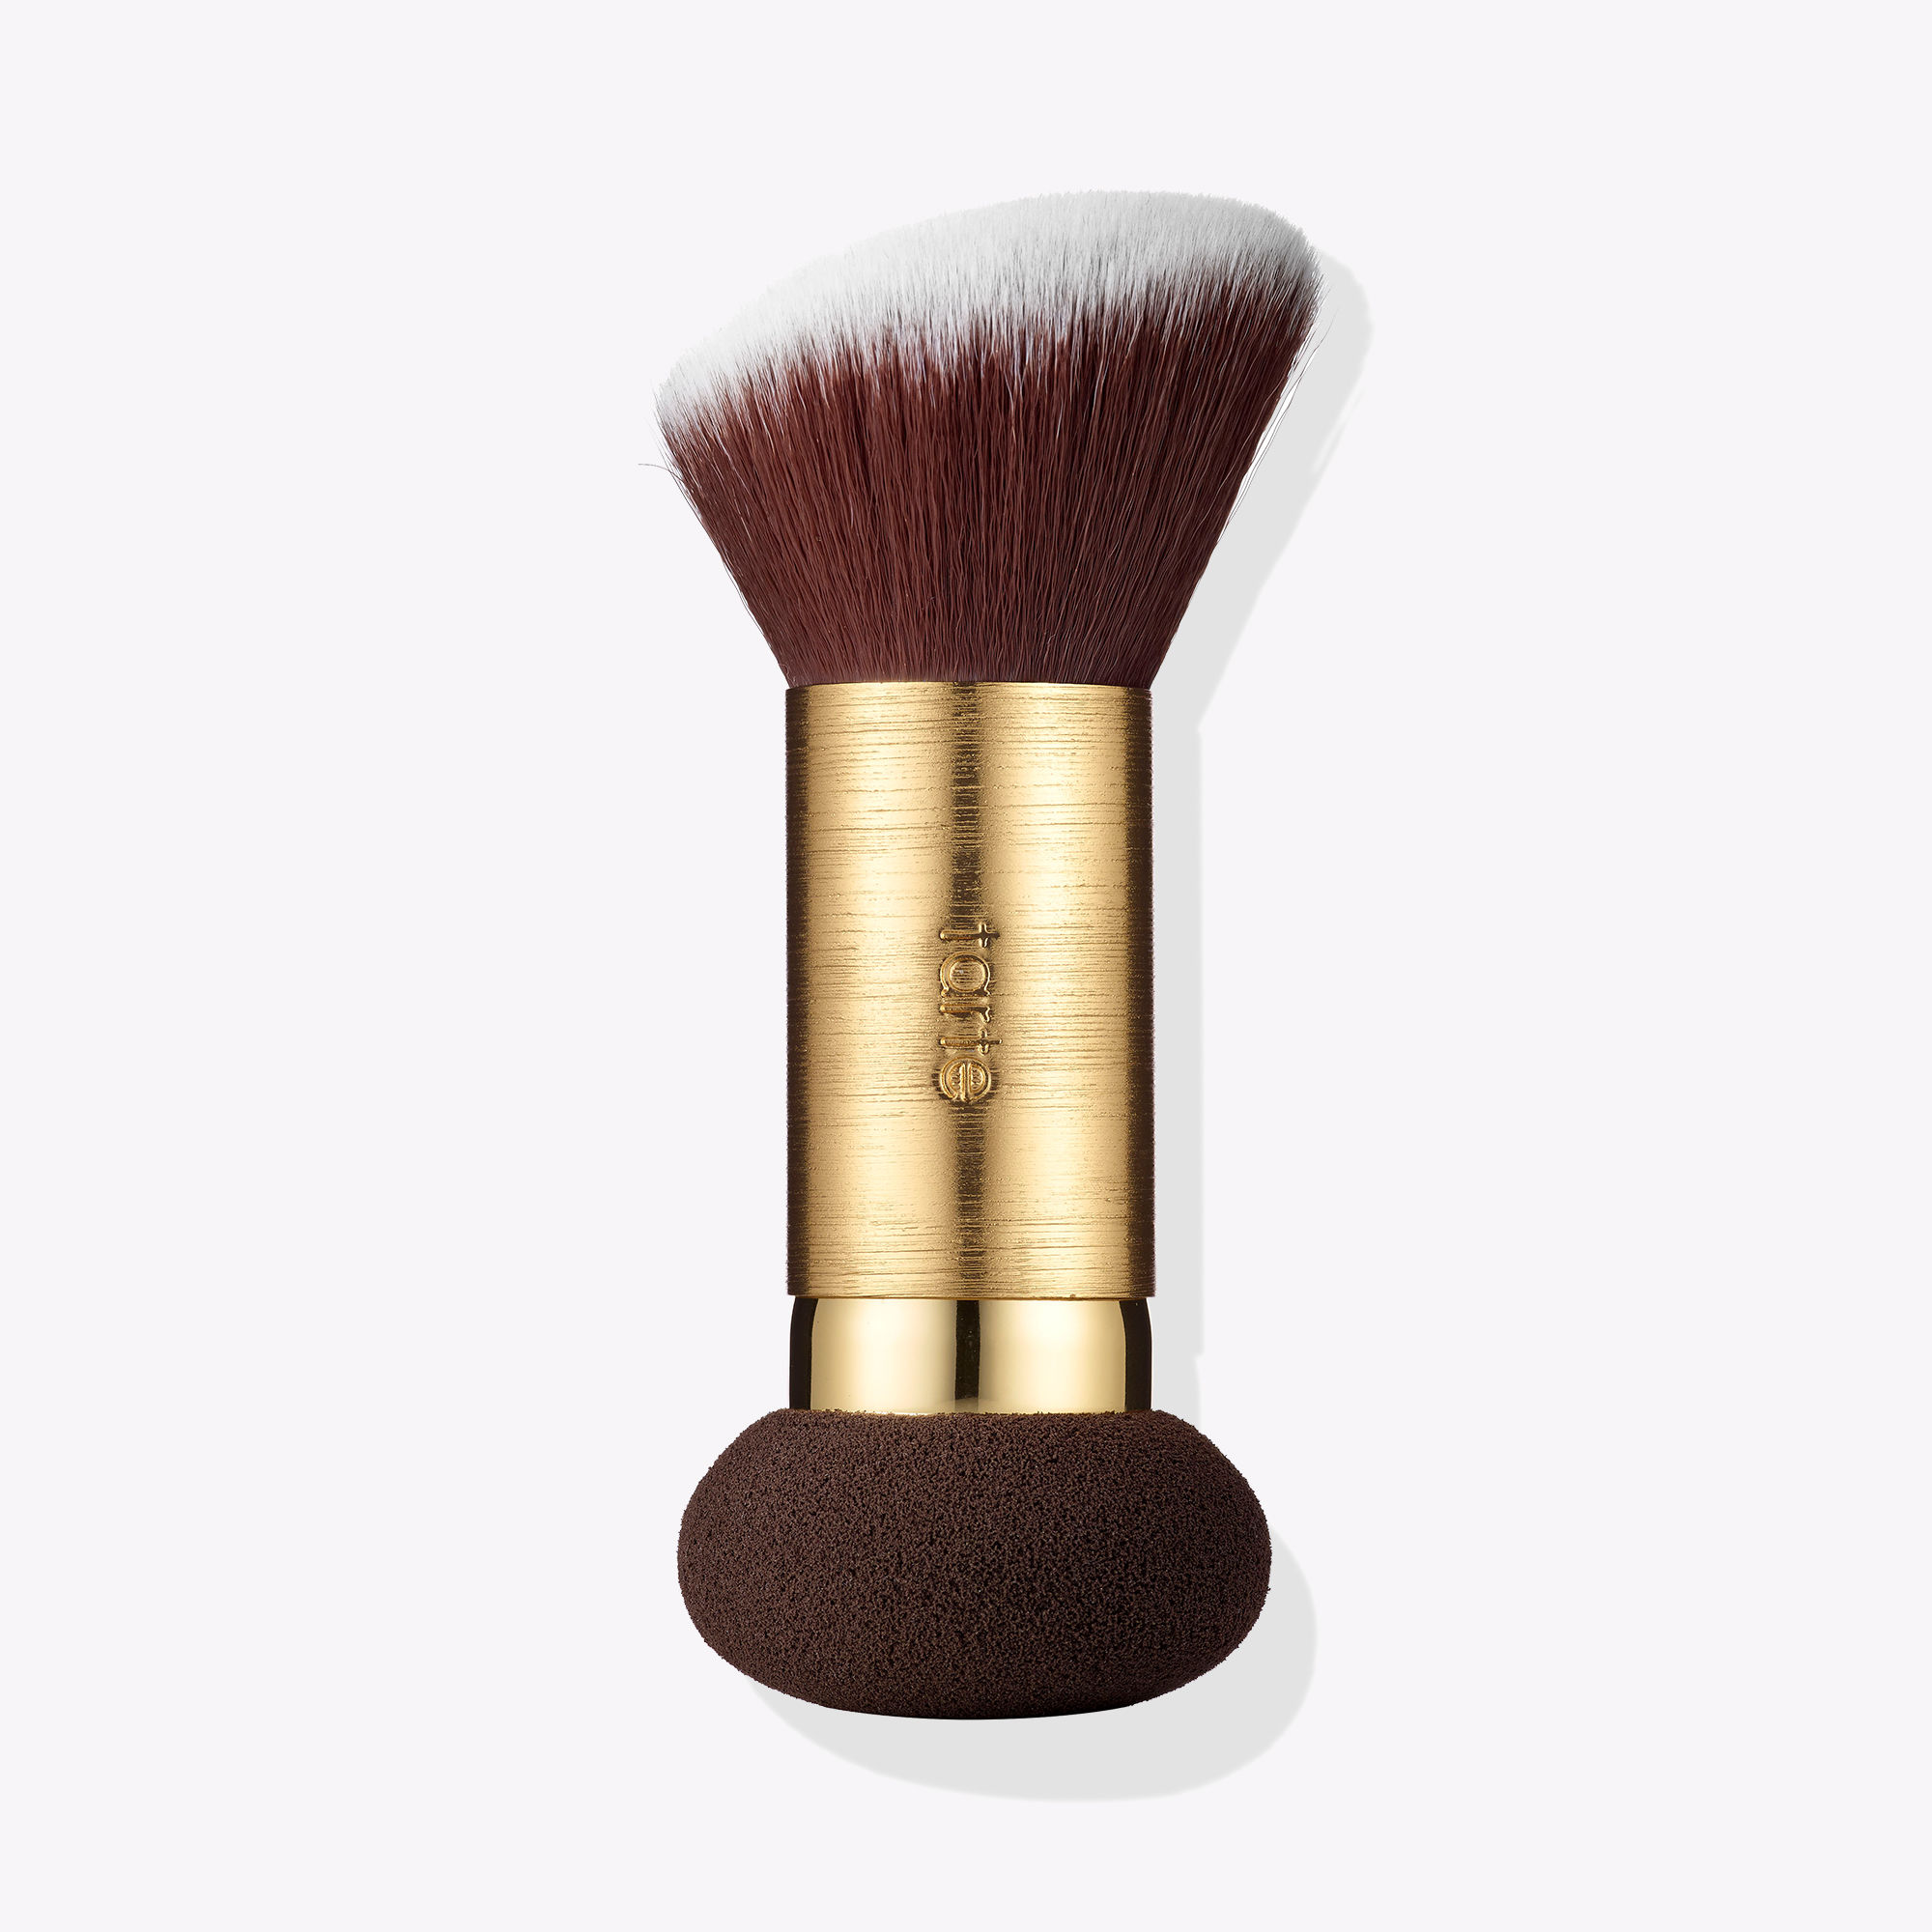 tarte™ powder foundation brush removable blending sponge